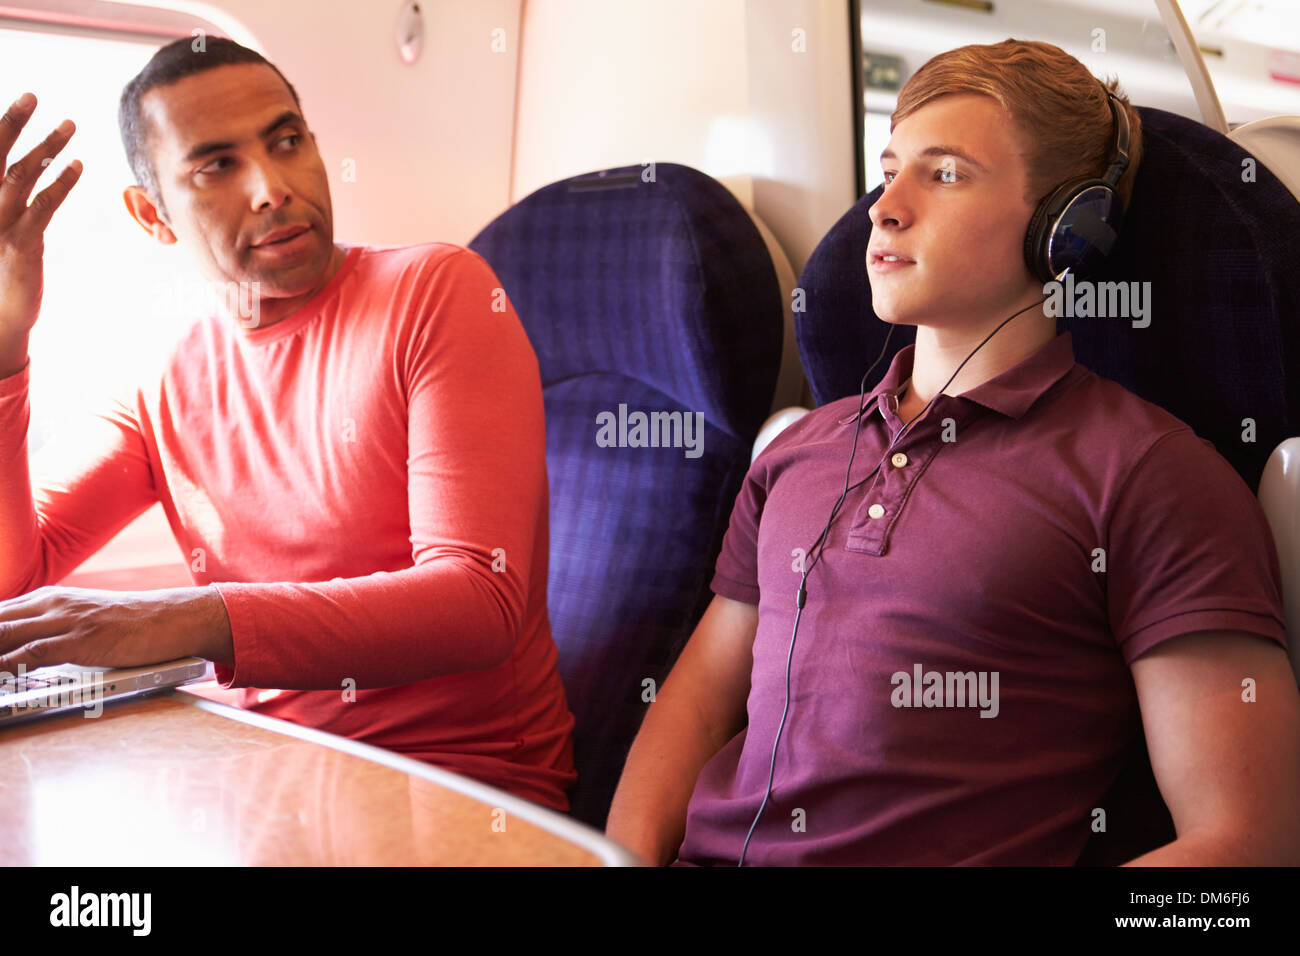 Young Man Disturbing Train Passengers With Loud Music - Stock Image